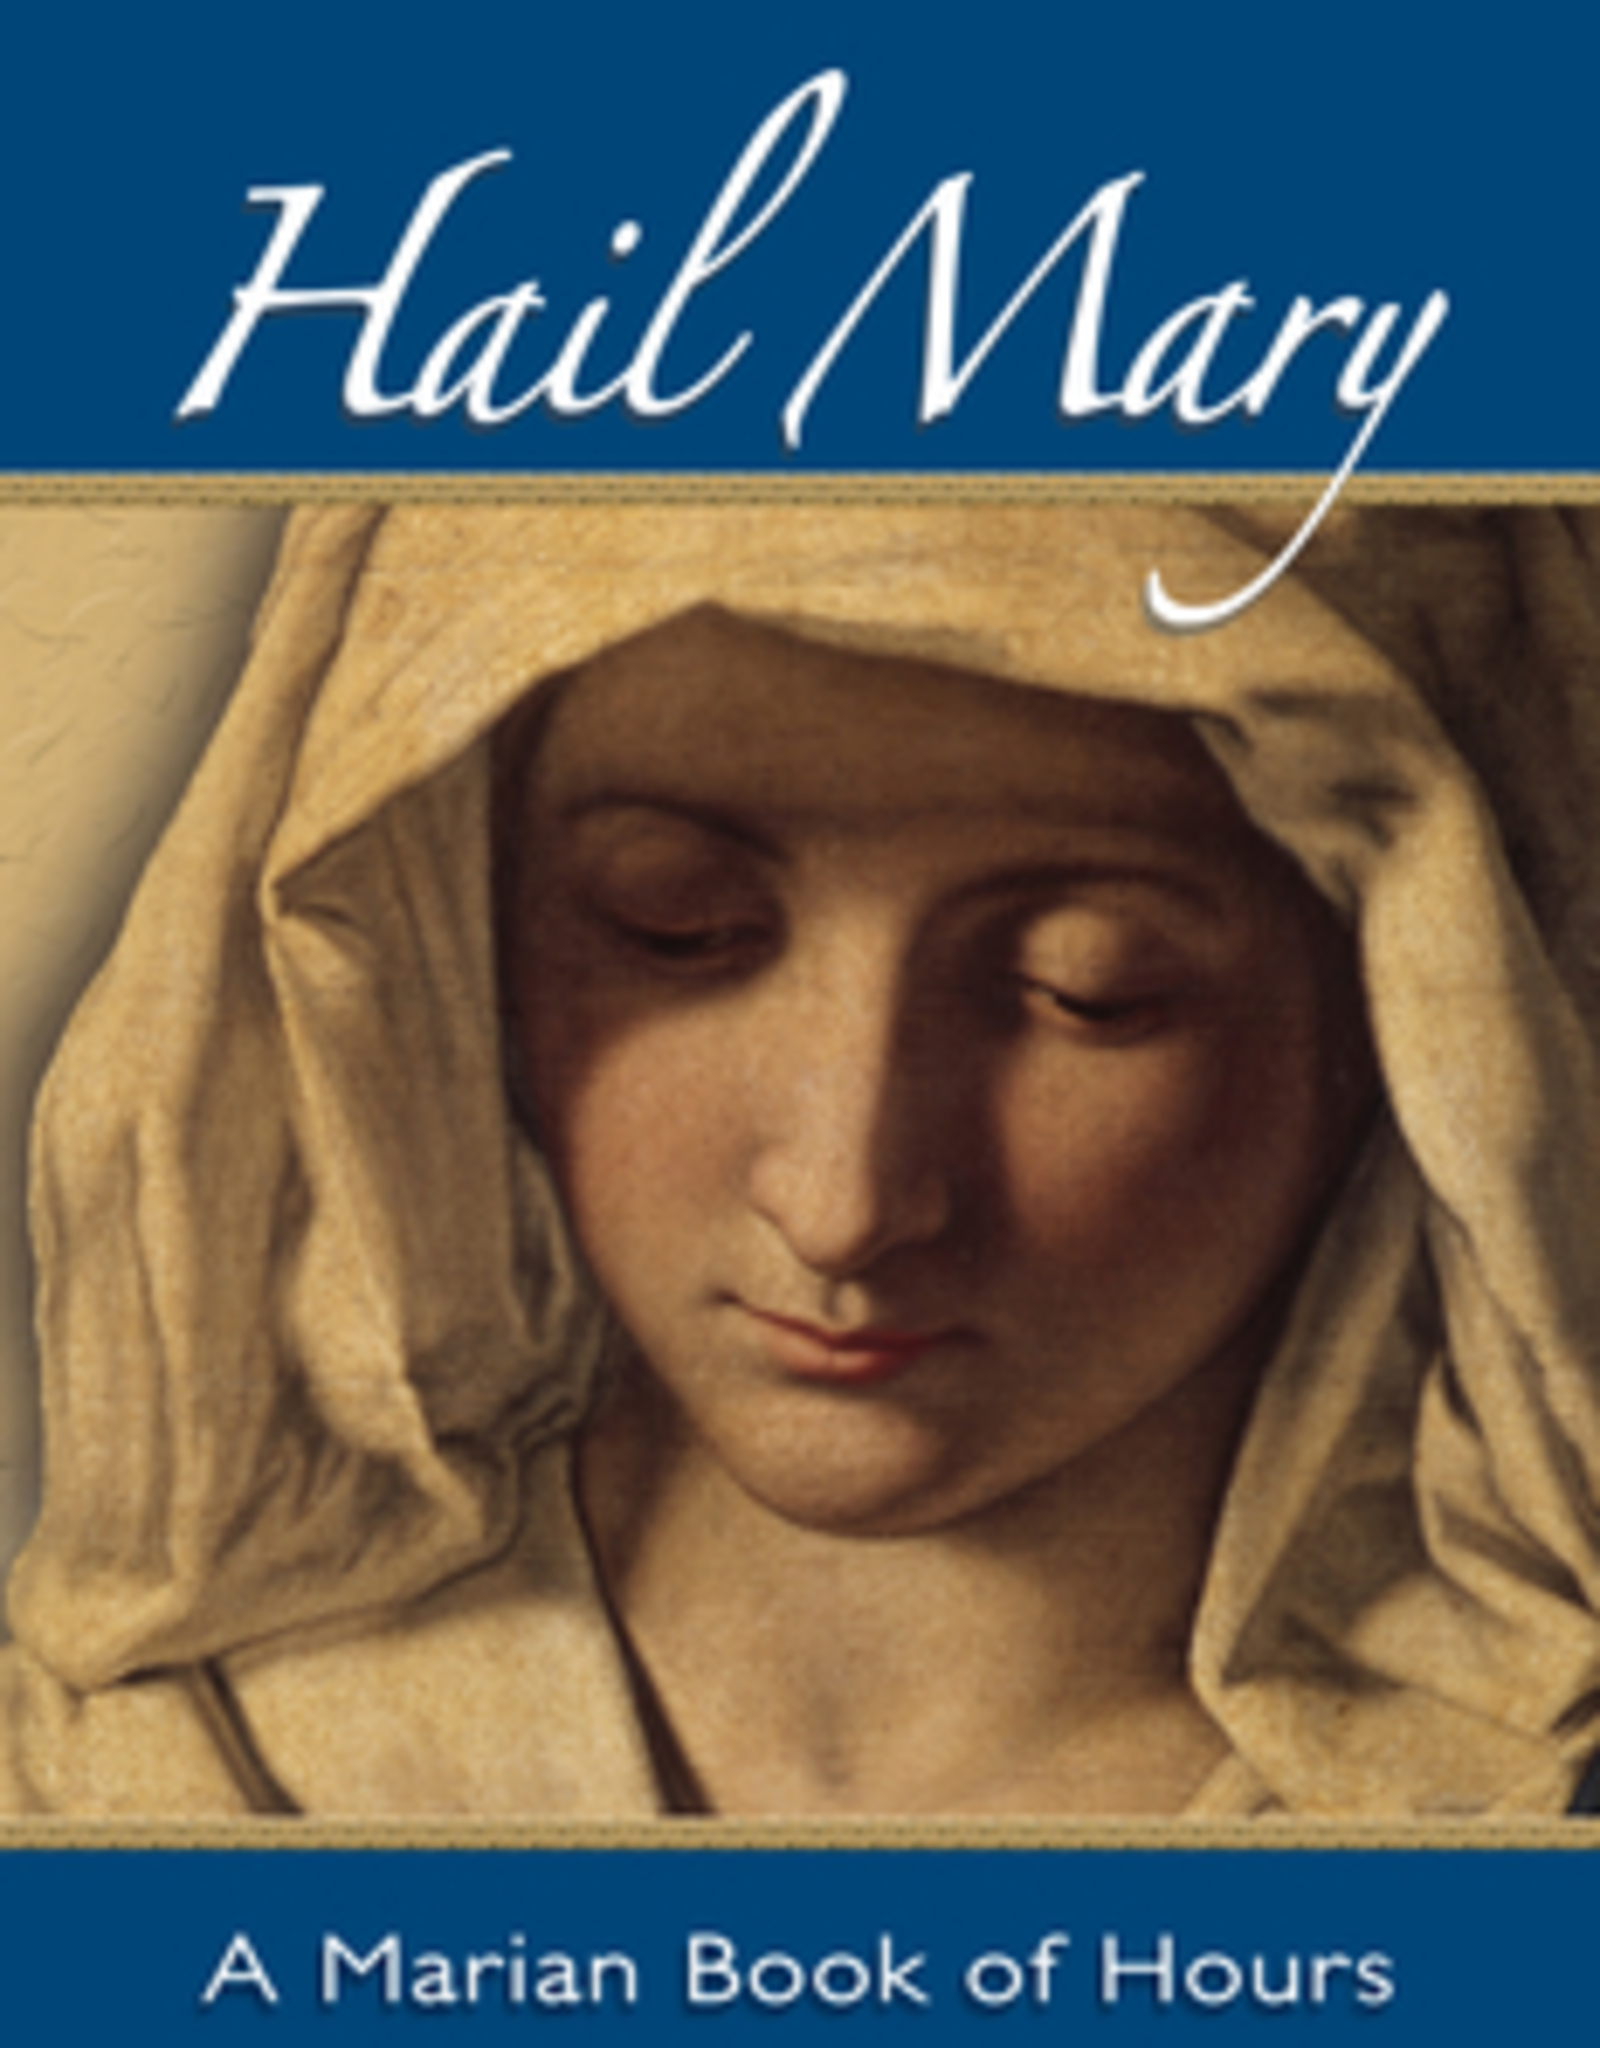 Ave Maria Press Hail Mary:  A Marian Book of Hours, by William Storey (paperback)